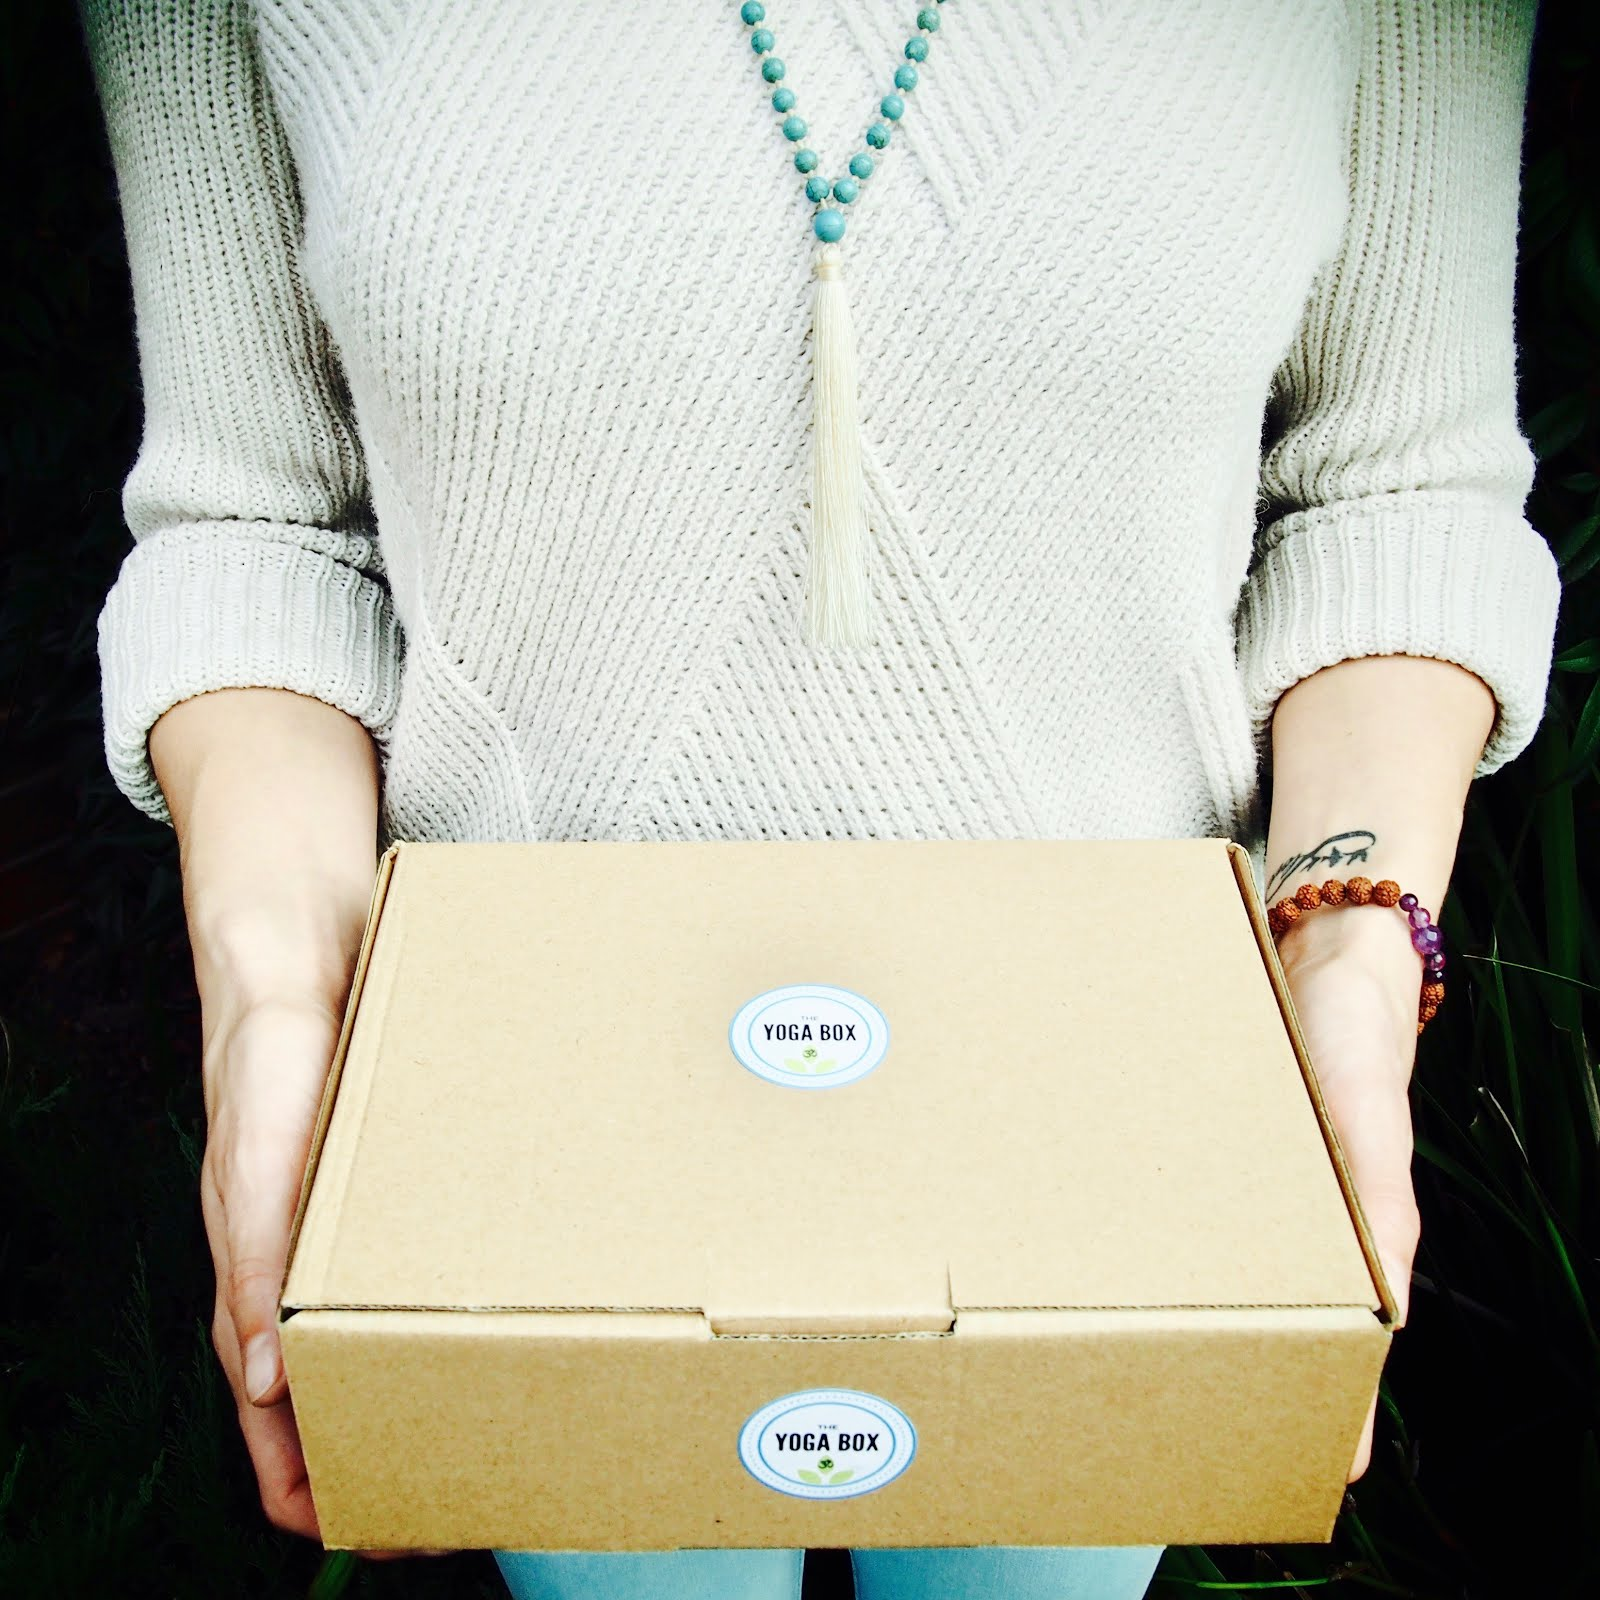 THE YOGA BOX - Australia's First Monthly Subscription Box Inspired by Yoga Lifestyle by BARBORAYOGA